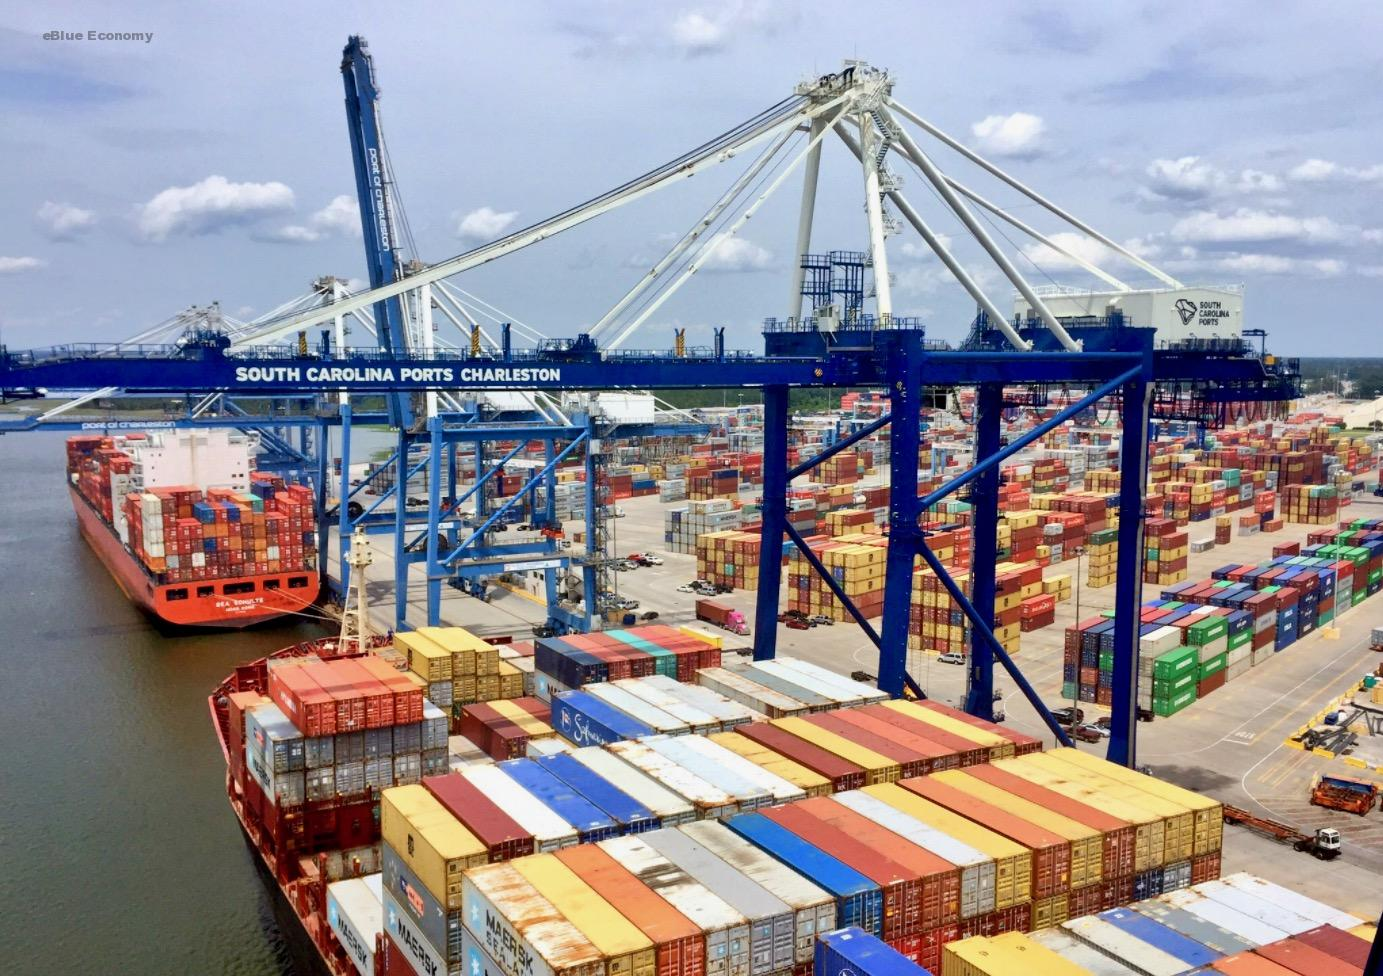 eBlue_economy_SC Ports achieves highest July on record for containers